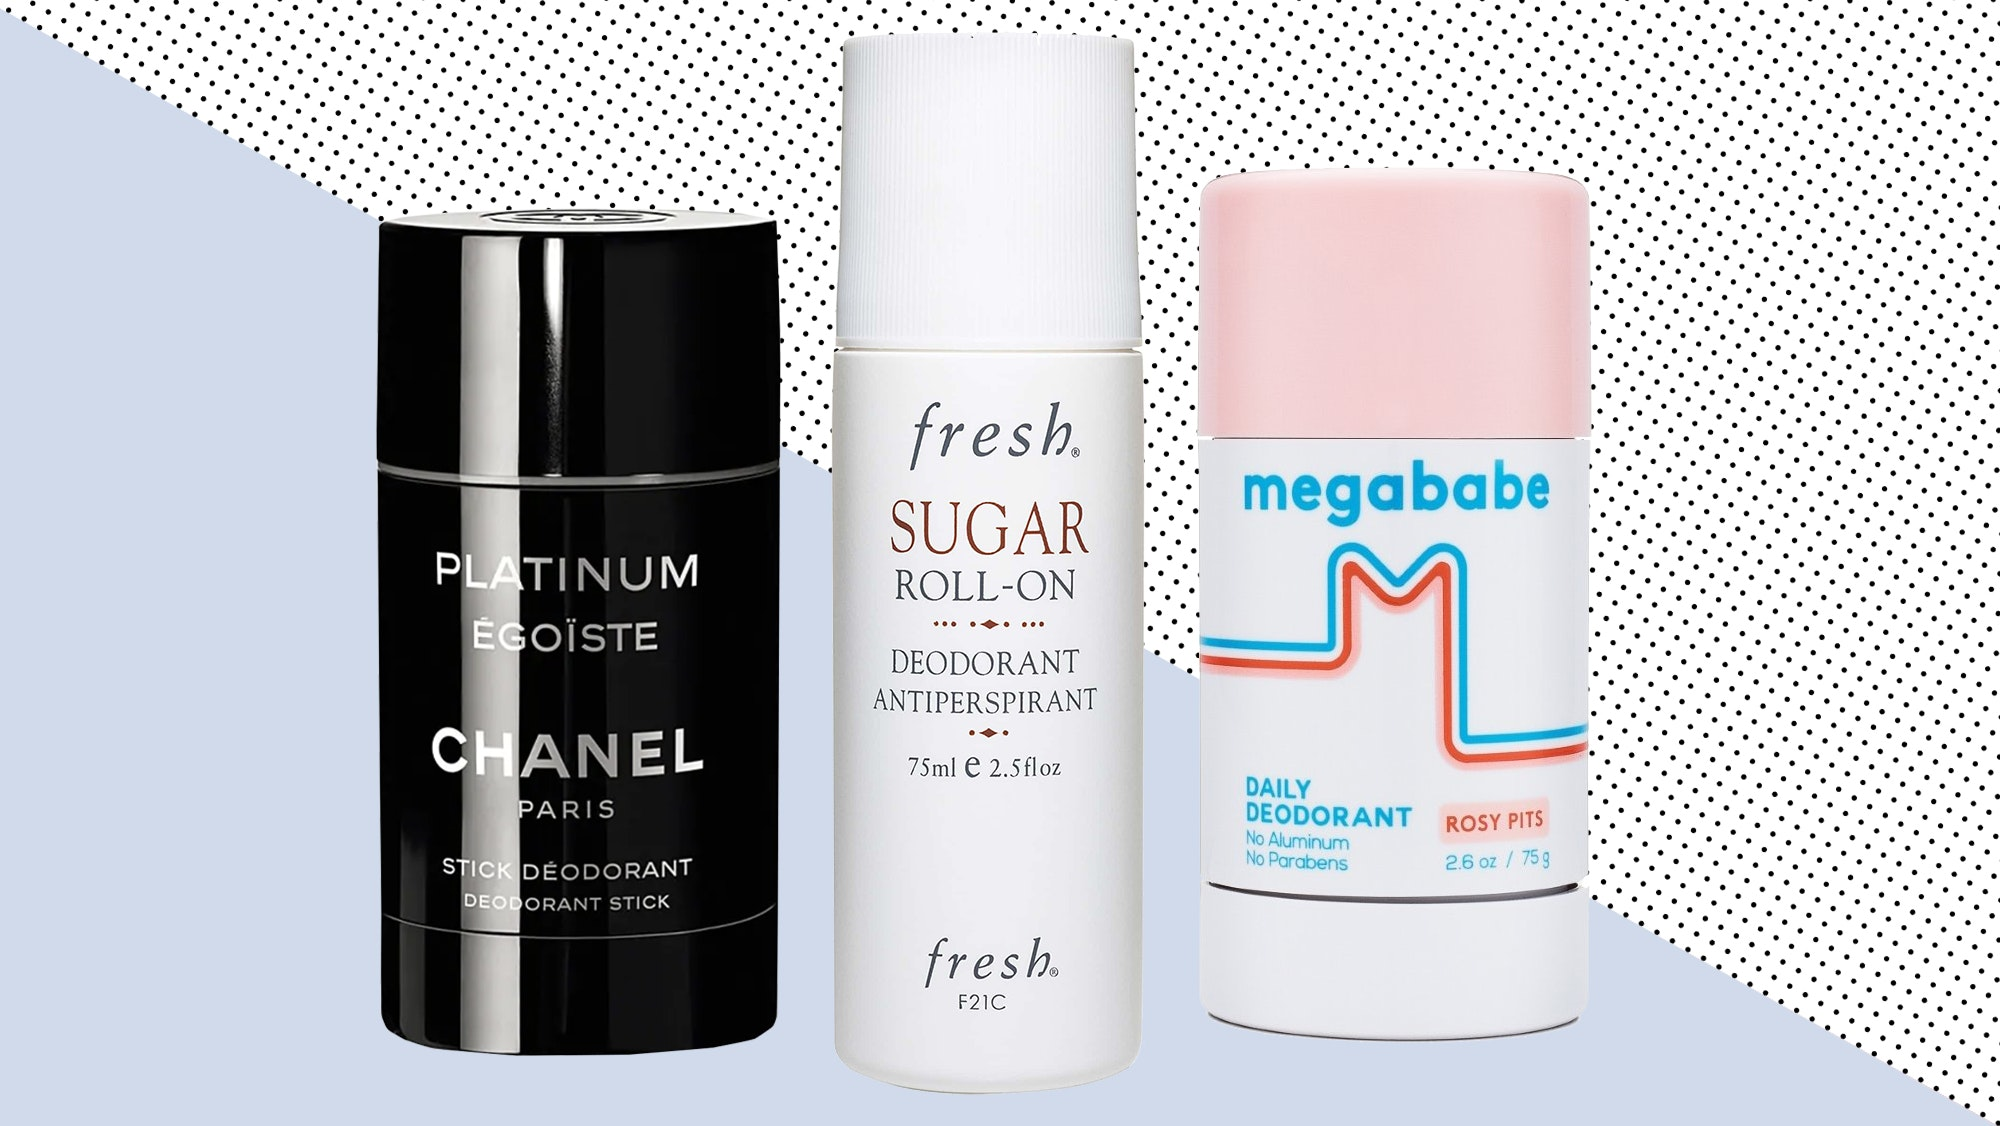 Spotlyte 7: Deodorants That Transcend Your Typical Formulas